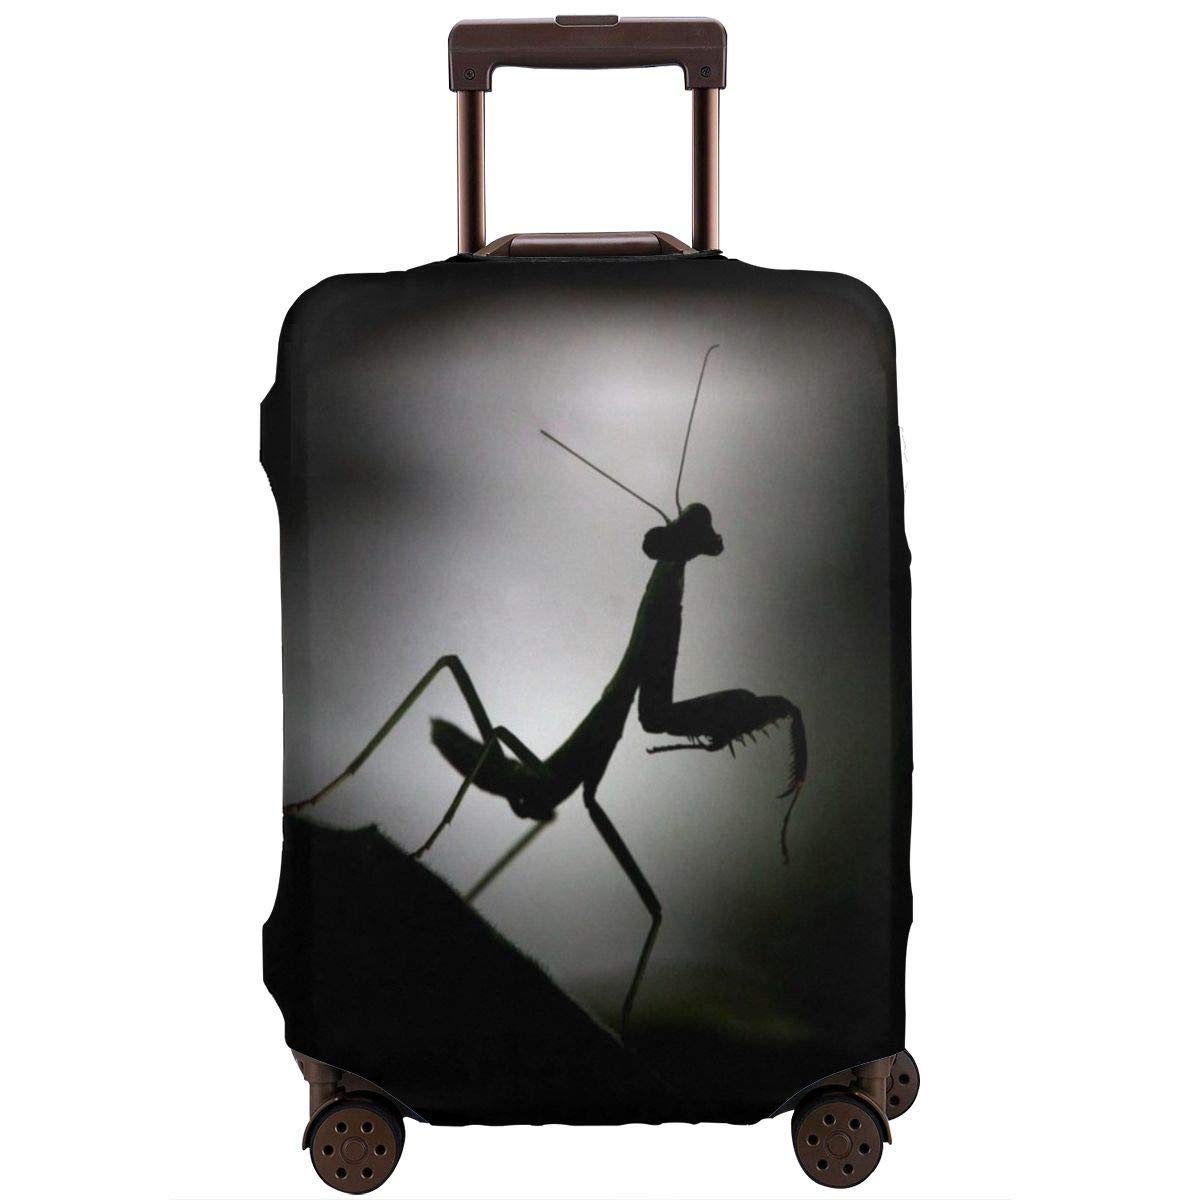 Yuotry Travel Luggage Cover Black Mantis Zipper Suitcase Protector Luggage with Fixed Buckle Fits 18-32 Inch Luggage XL